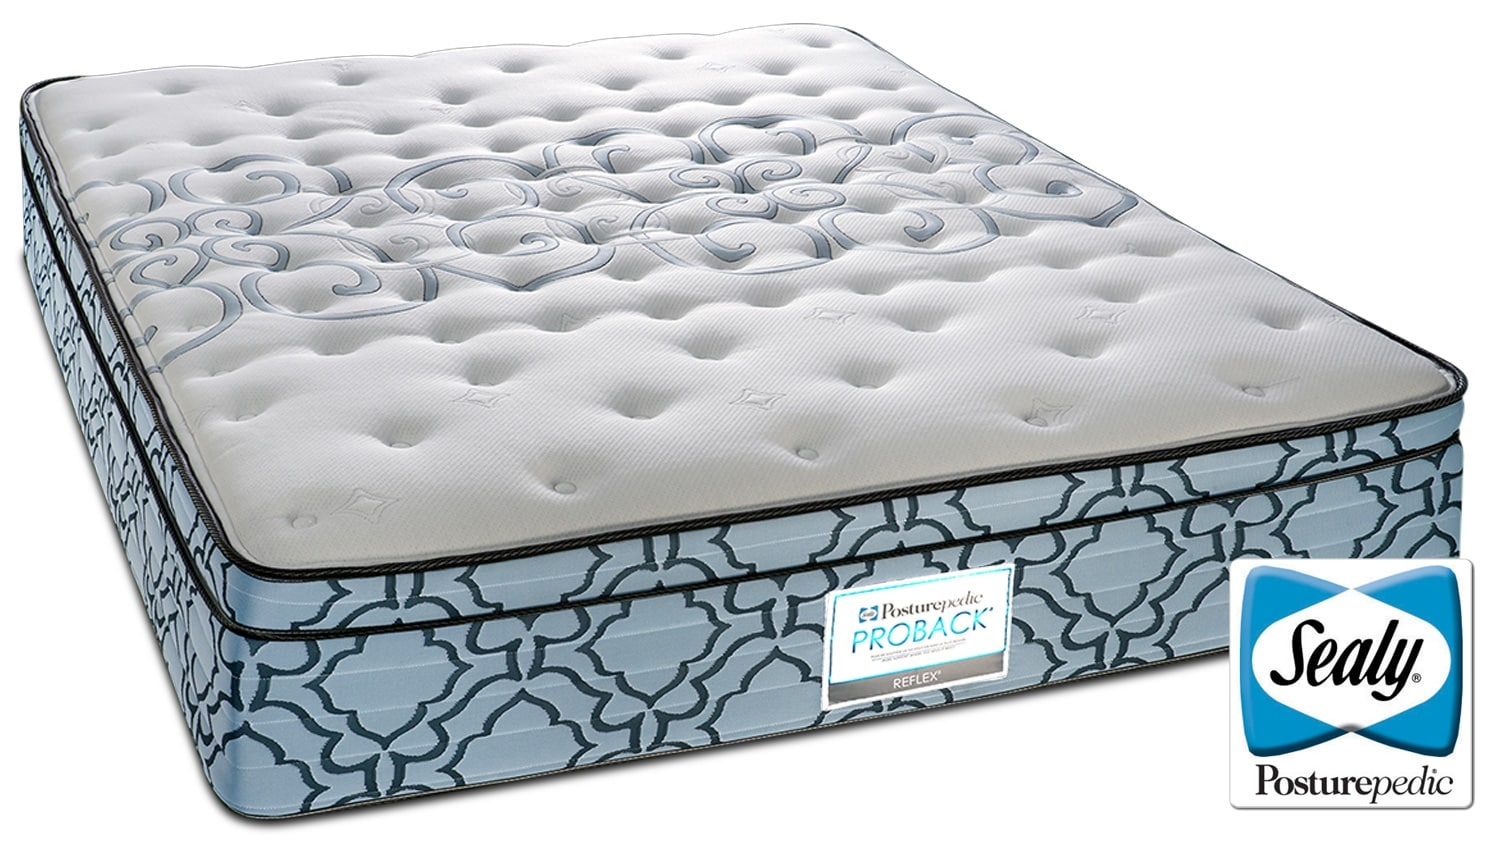 Mattresses and Bedding - Sealy Veil Cushion Firm King Mattress